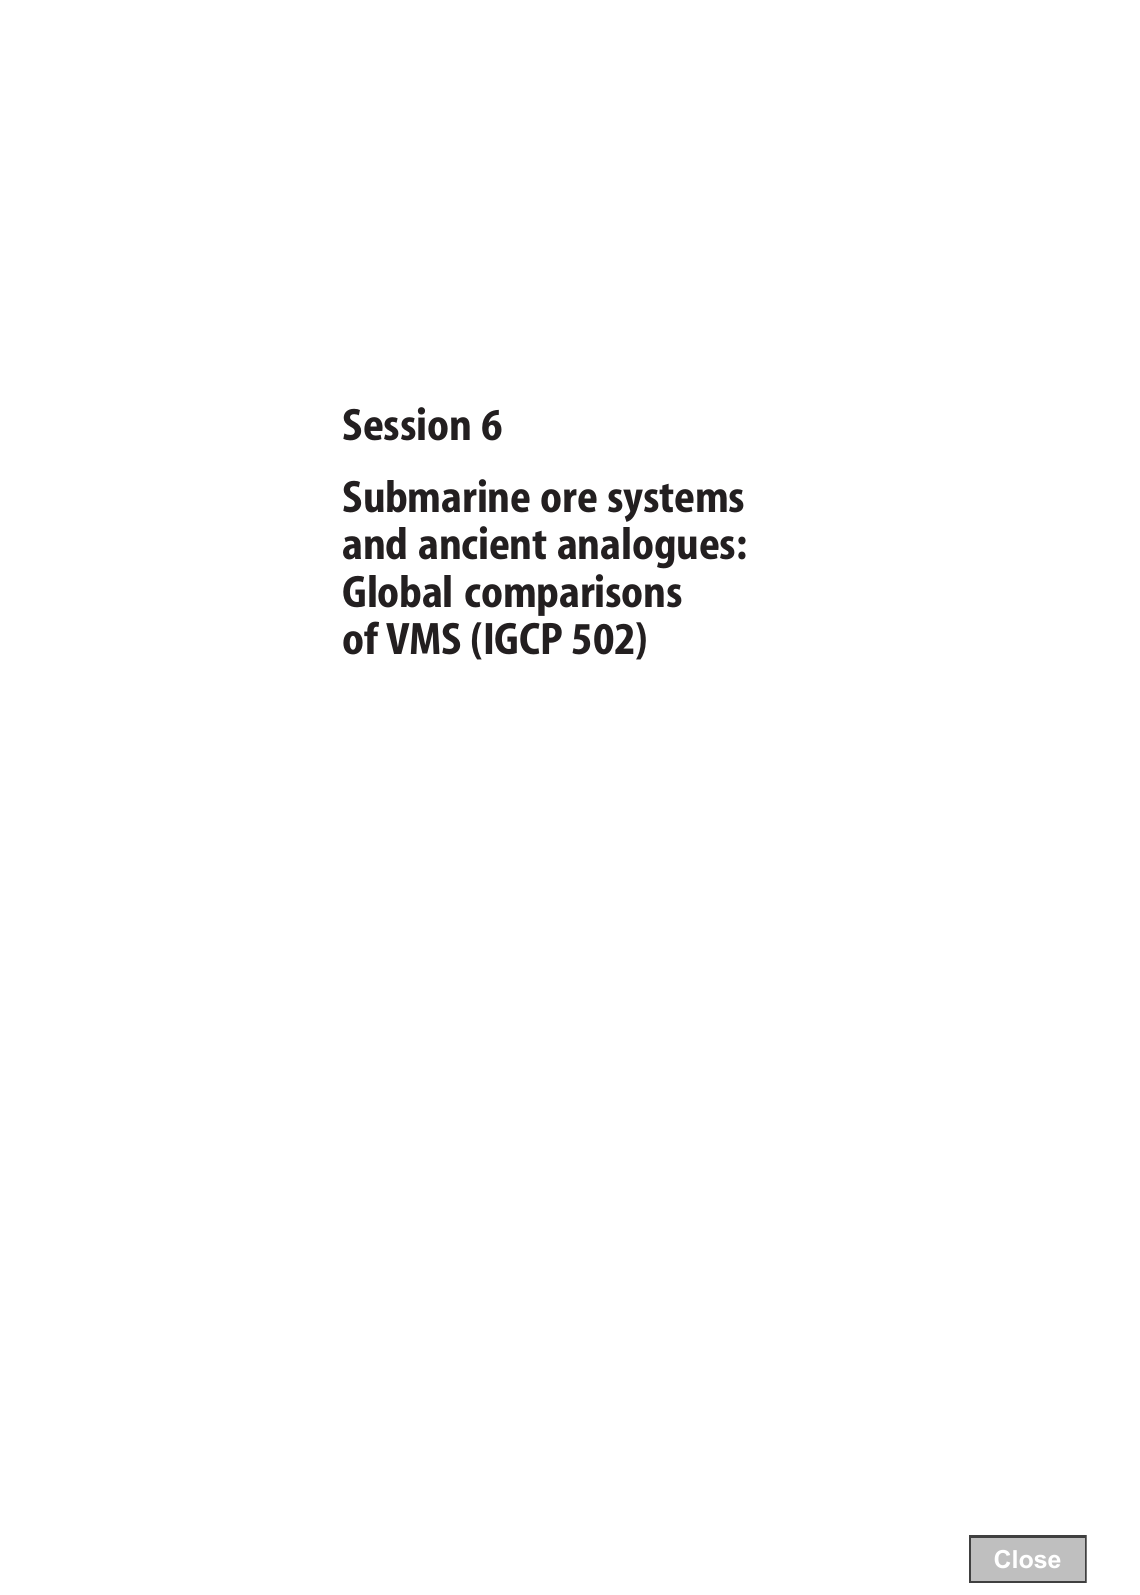 Session 6 submarine ore systems and ancient analogues global session 6 submarine ore systems and ancient analogues global comparisons publicscrutiny Image collections